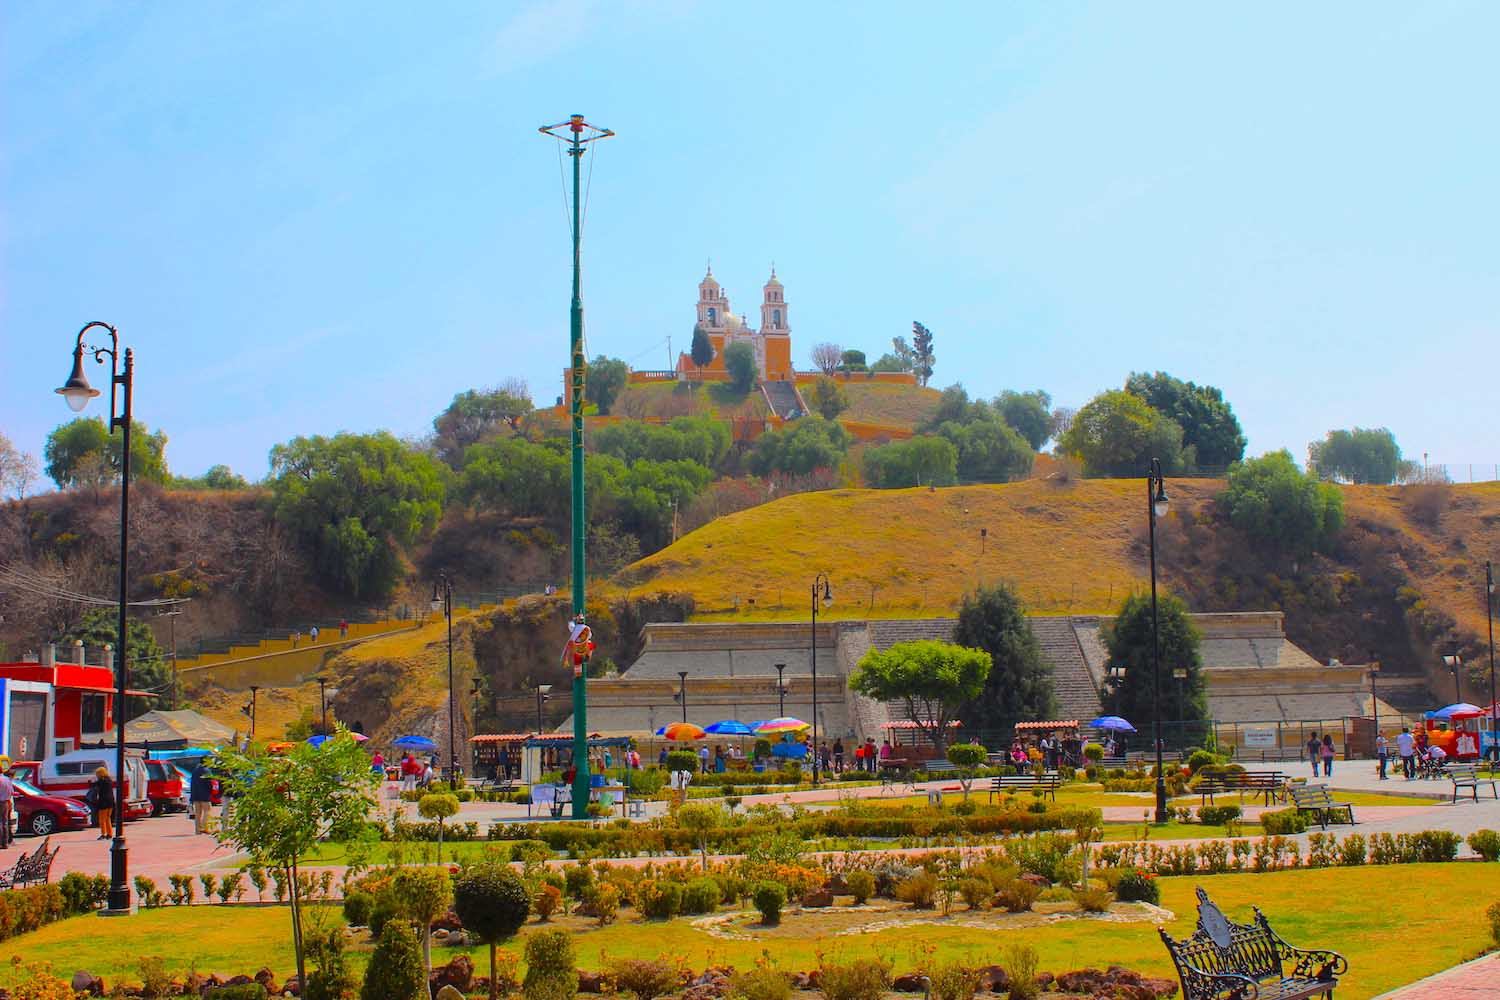 Church of our Lady of Remedies cholula